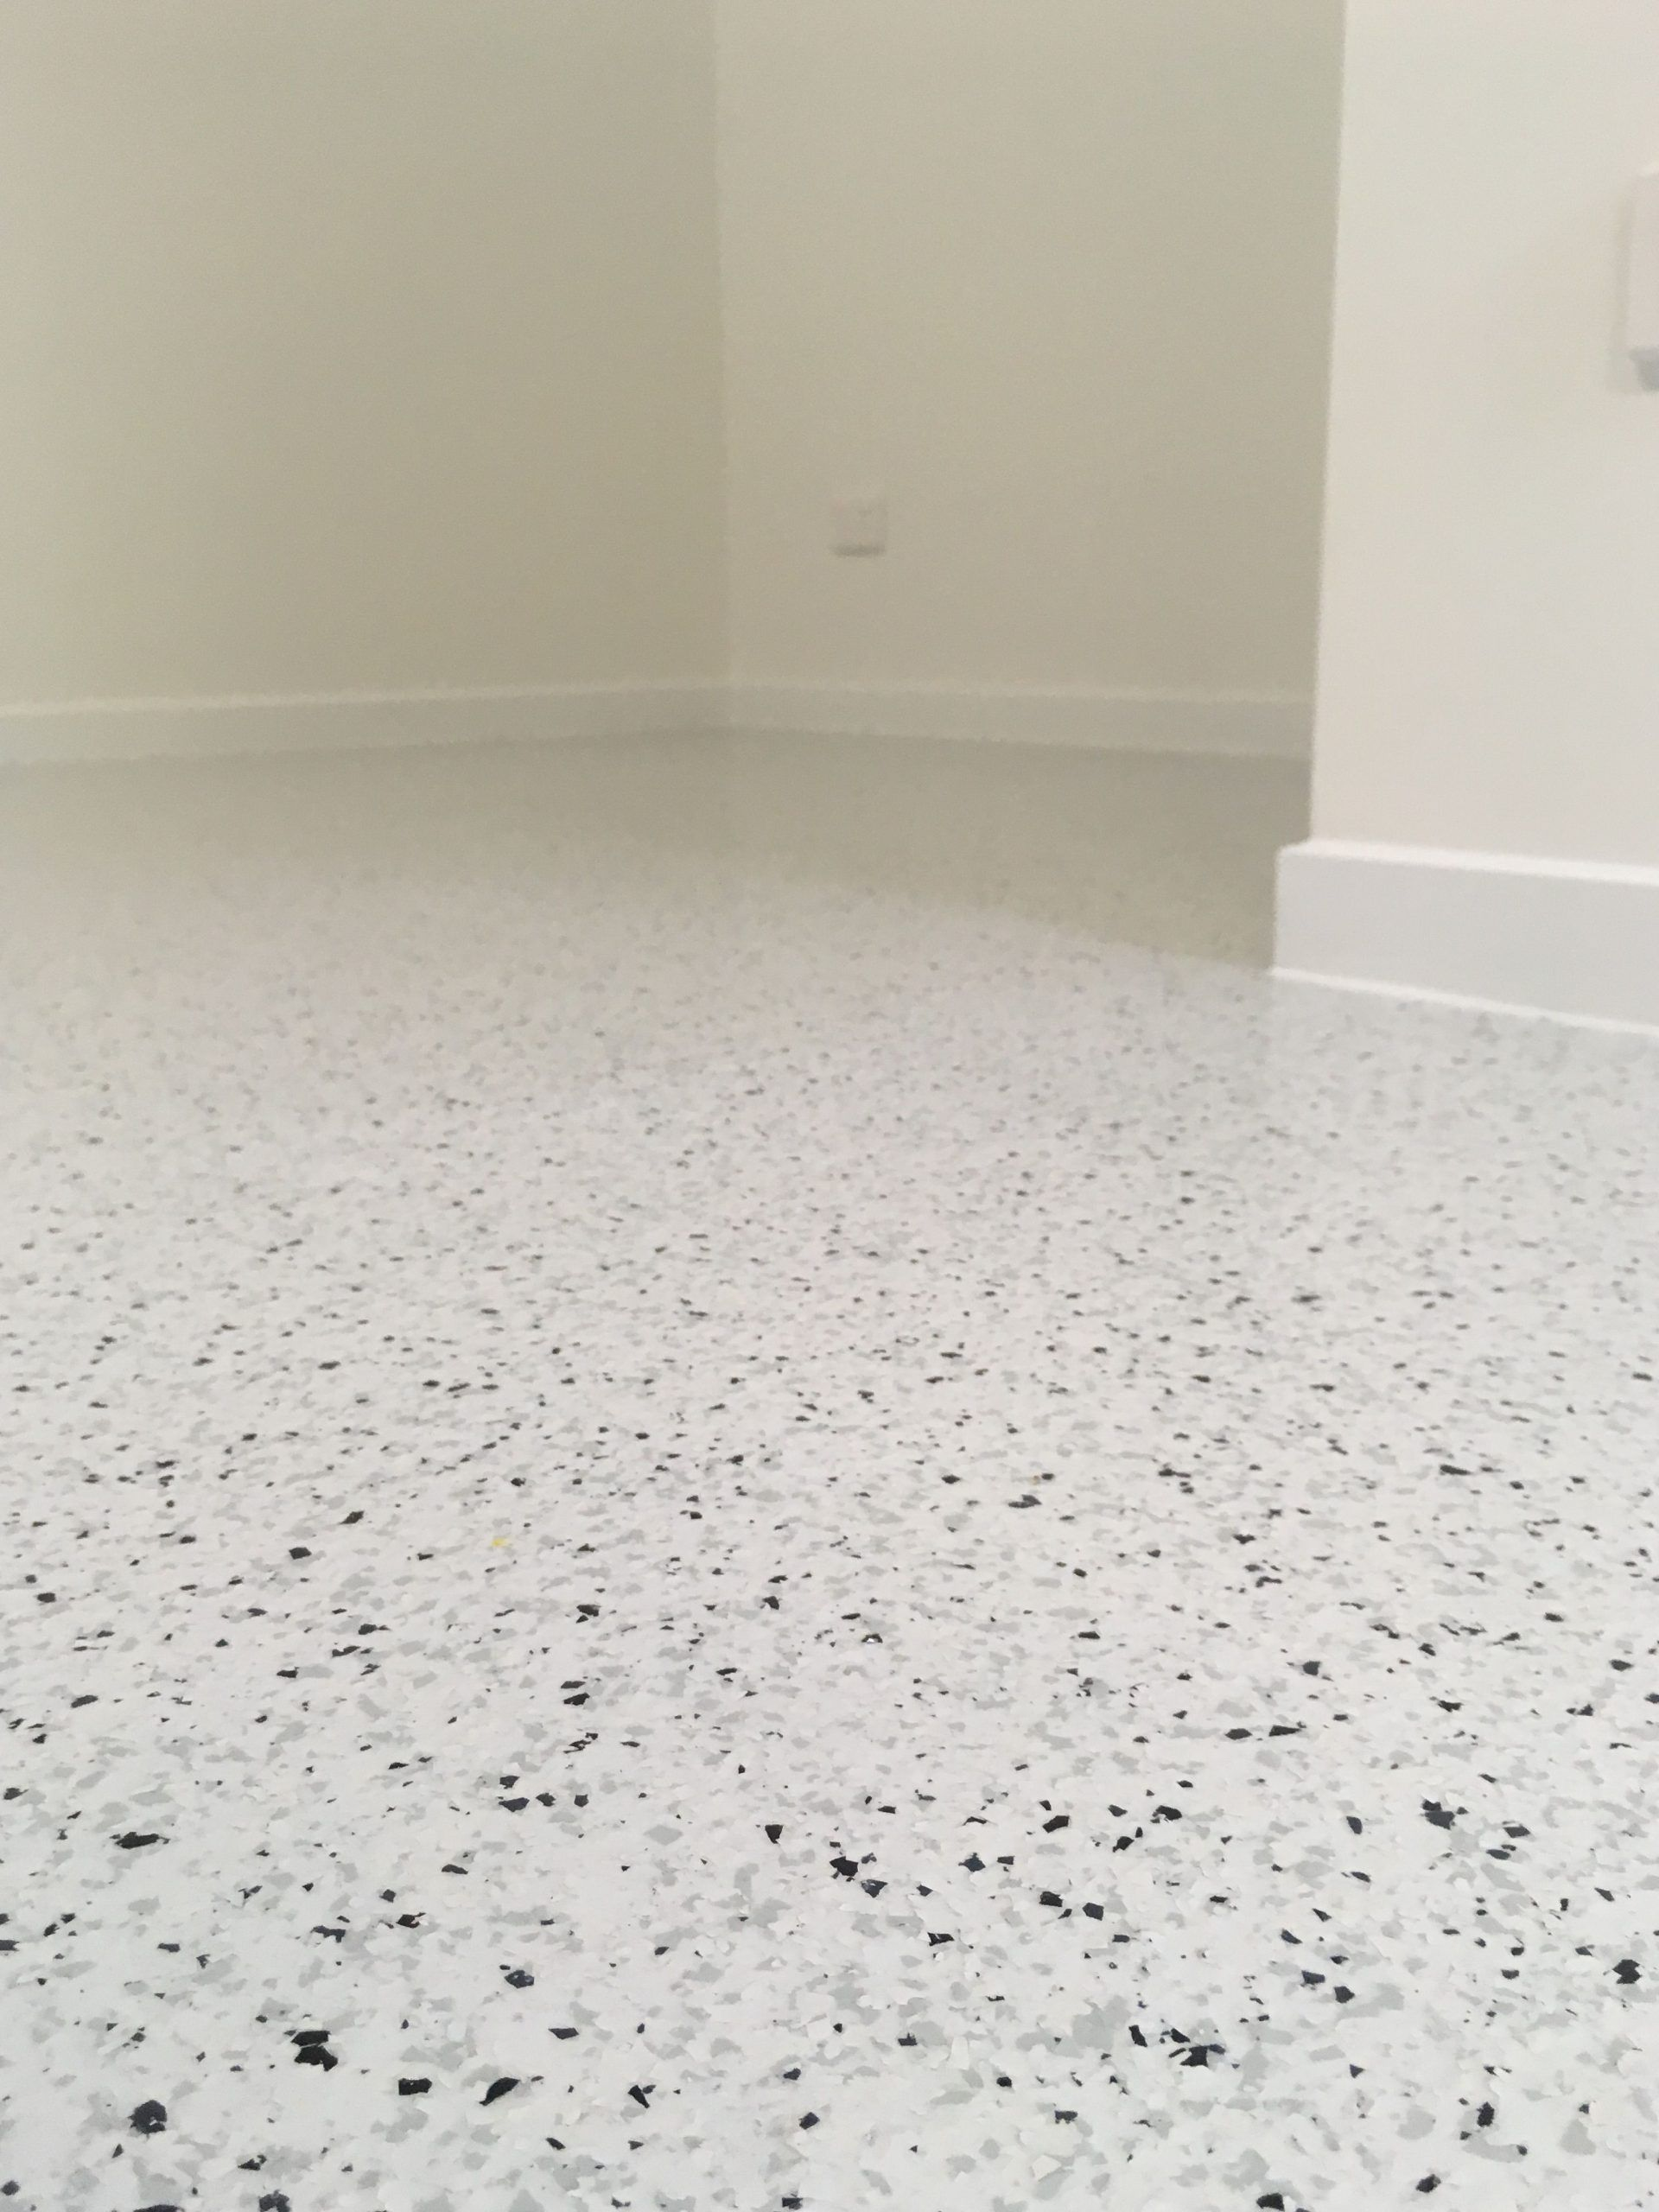 A Beautiful Flake Epoxy Flooring Installation In A Living Area Of A New Build At Area Beautiful Build In 2020 Epoxy Floor Epoxy Floor Basement Floor Installation